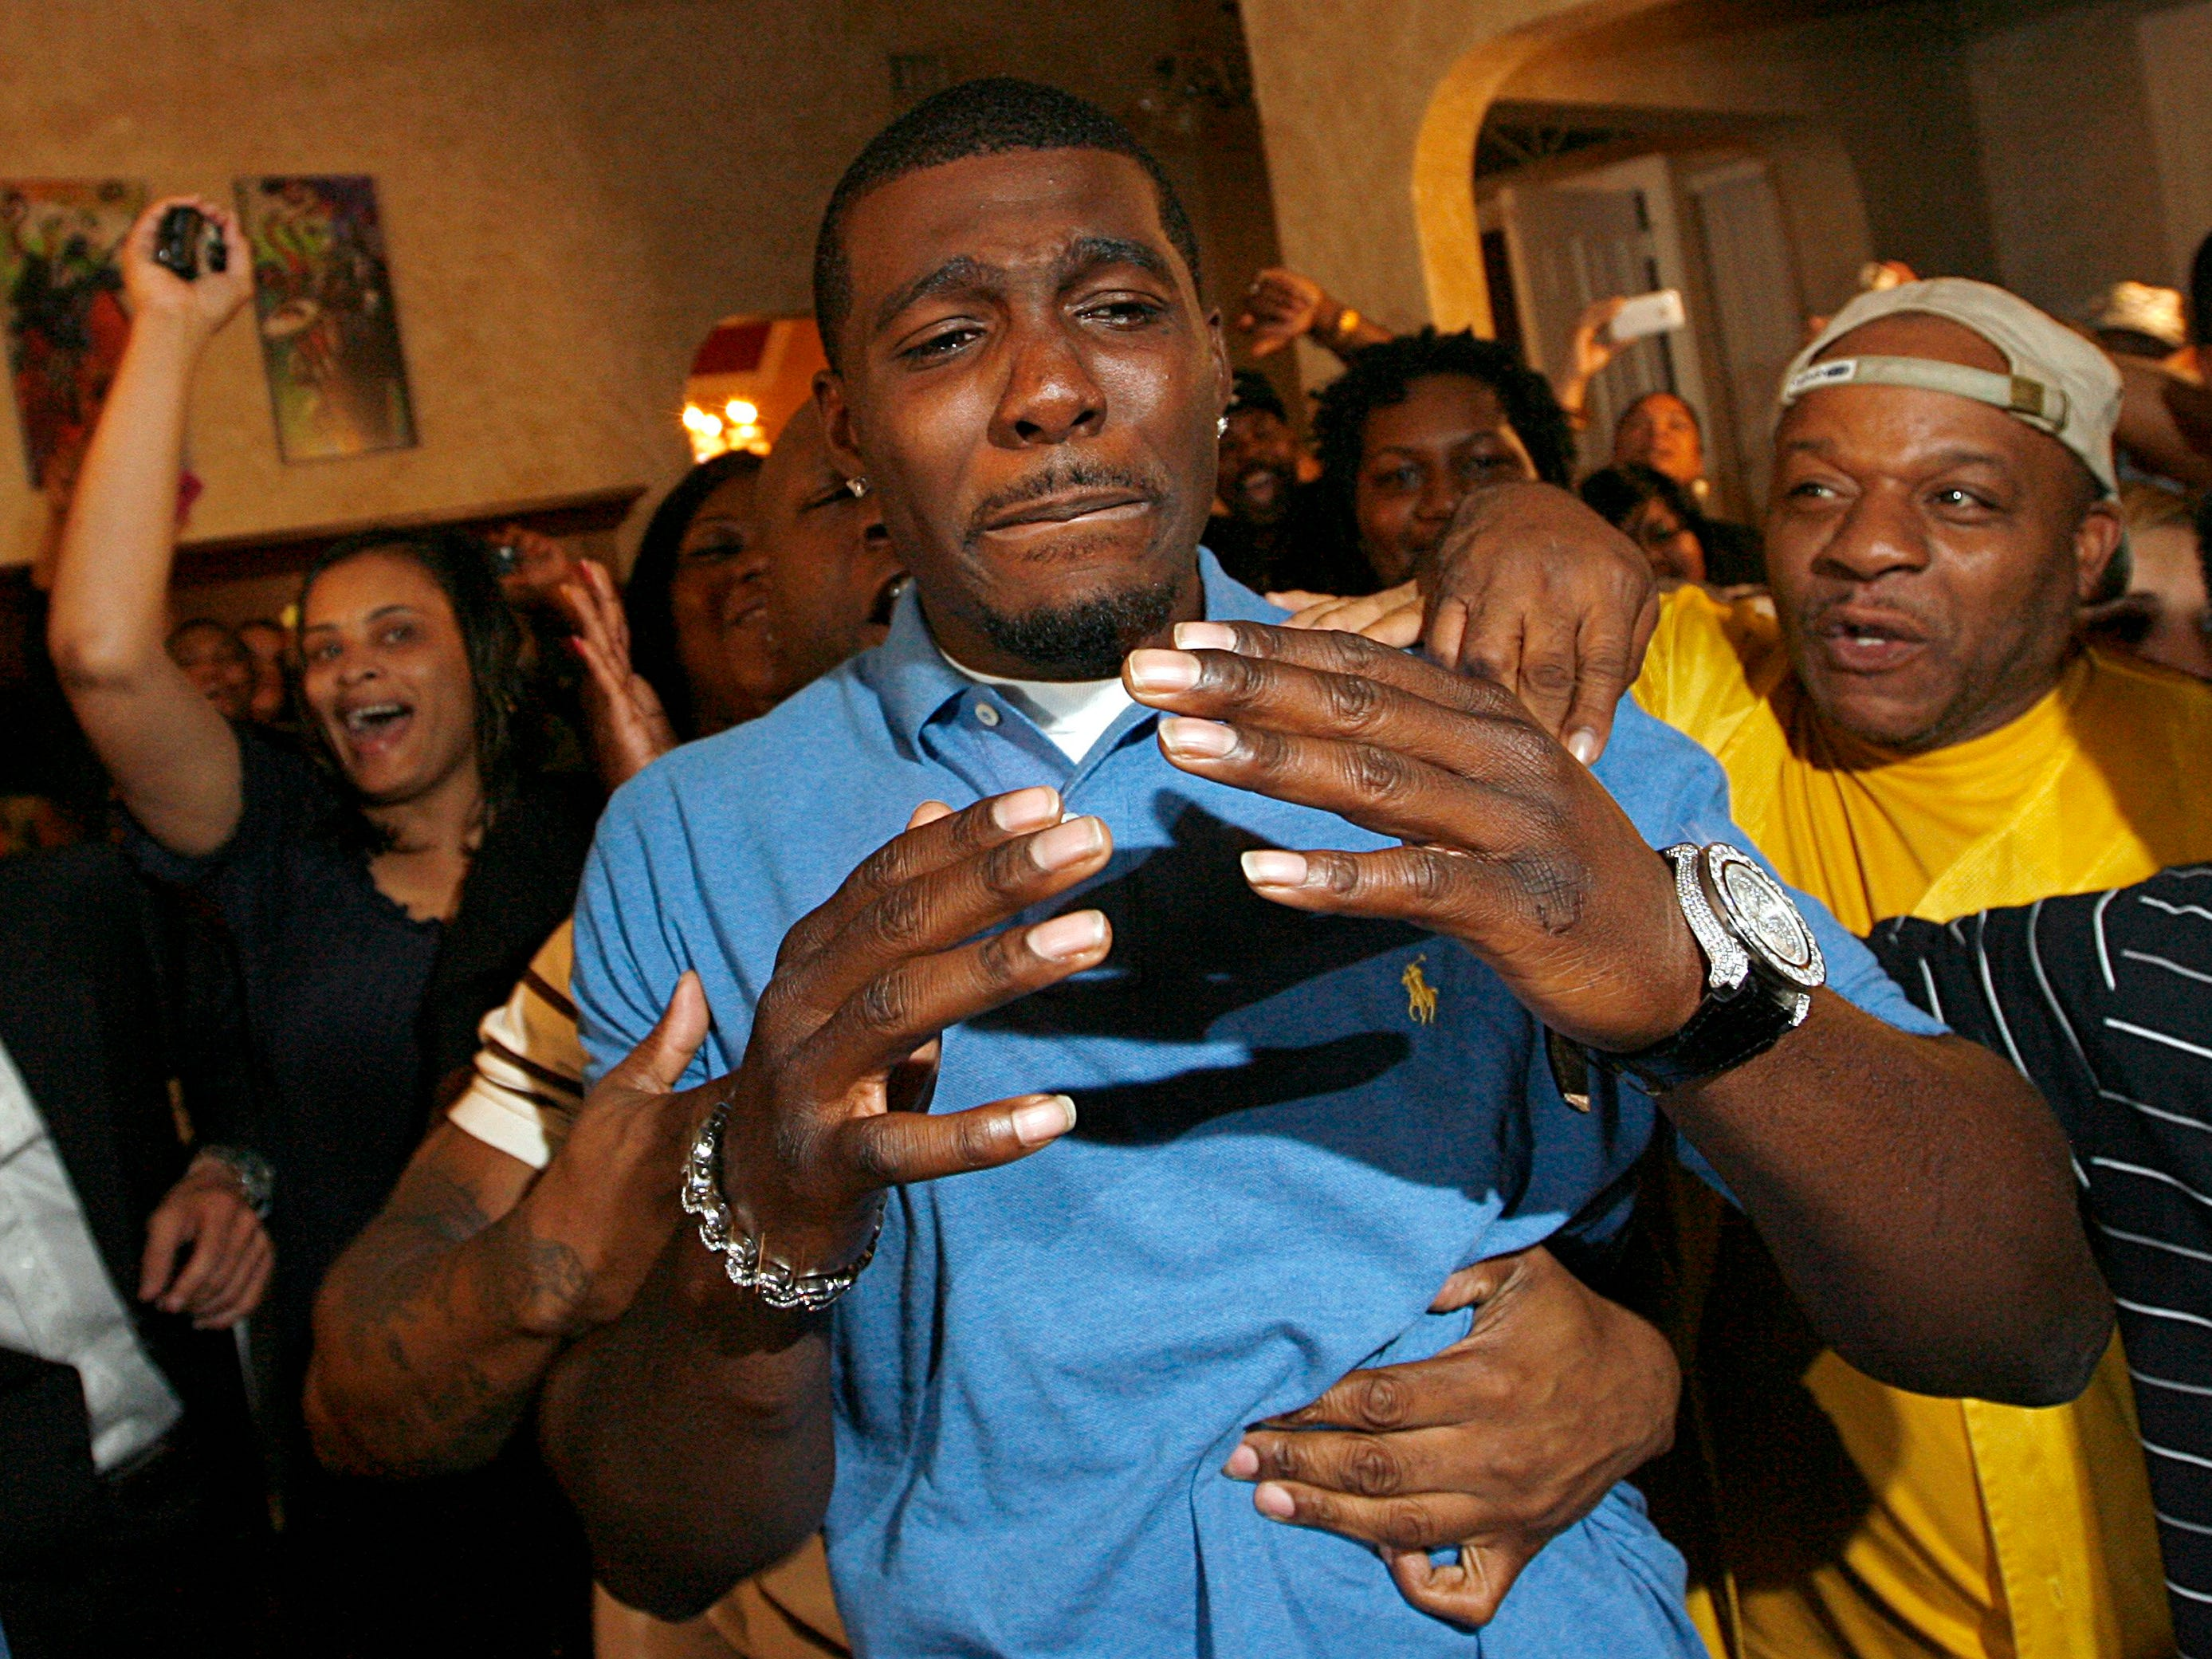 Dez Bryant is overcome with emotion while with friends and family after being selected as the  24th overall pick by the Dallas Cowboys in the first round of  2010 NFL draft.